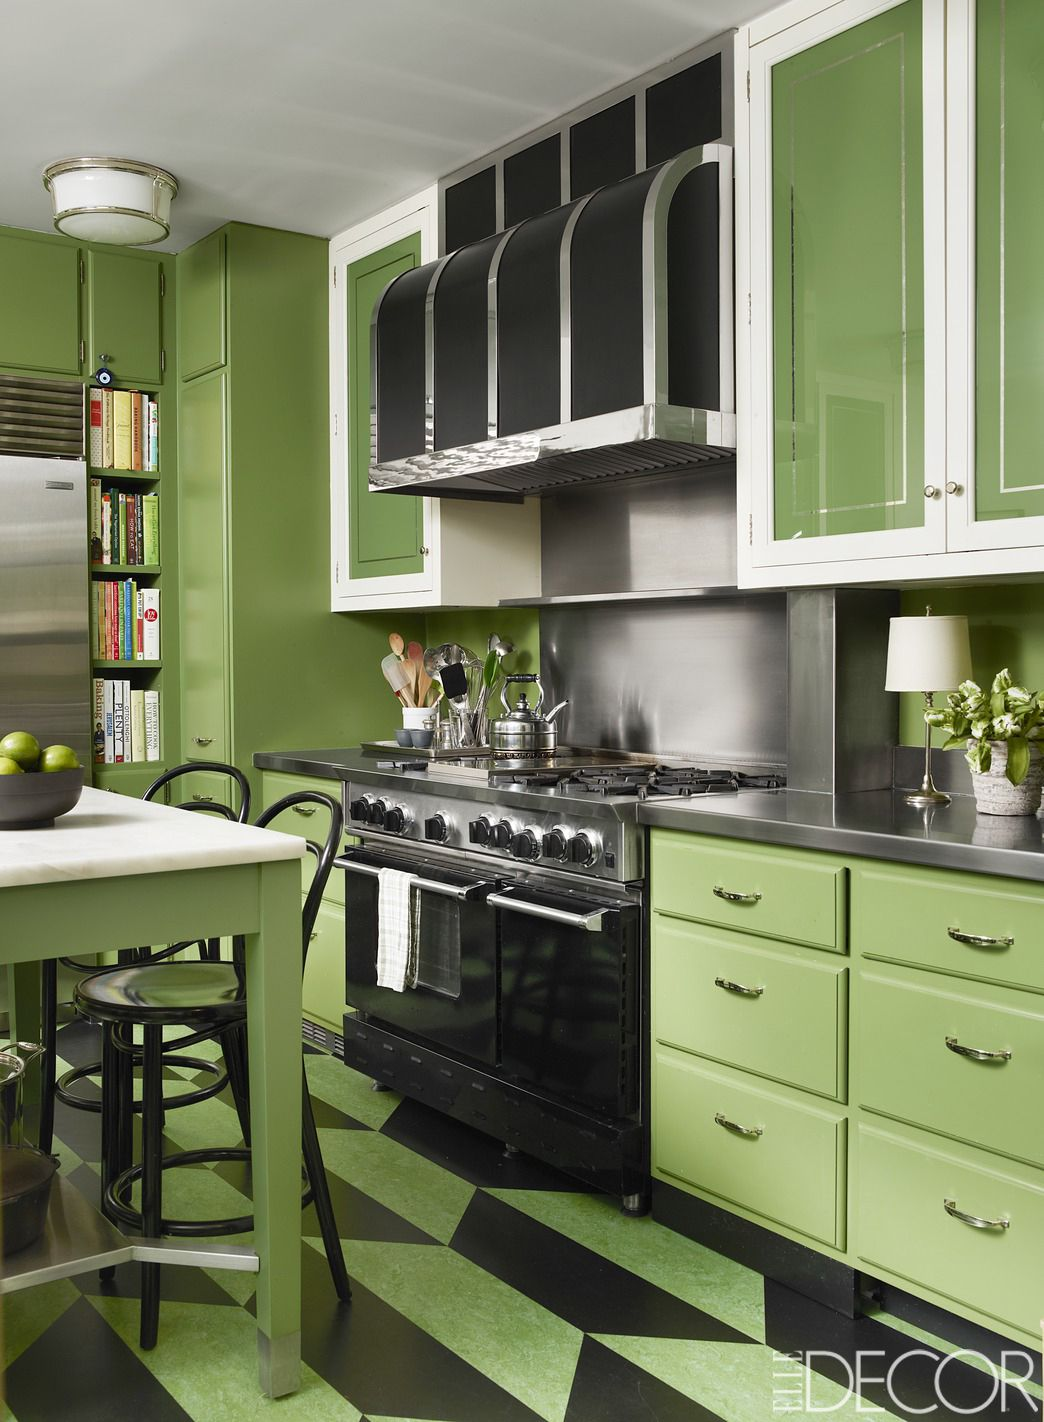 HOUSE TOUR: Childhood Design Dreams Come To Life In This Manhattan on green carpet ideas, kitchen wall color ideas, green kitchen house, blue and green kitchen ideas, green painted kitchen cupboards, white country kitchen designs ideas, green country kitchen ideas, green kitchen feng shui, green paint in kitchen, green doors ideas, lavender kitchen ideas, lime green kitchen ideas, light green kitchen ideas, green kitchen design ideas, green kitchen backsplash ideas, black and green kitchen ideas, green kitchen colors, green kitchen remodeling ideas, benjamin moore kitchen color ideas, kitchen painting ideas,